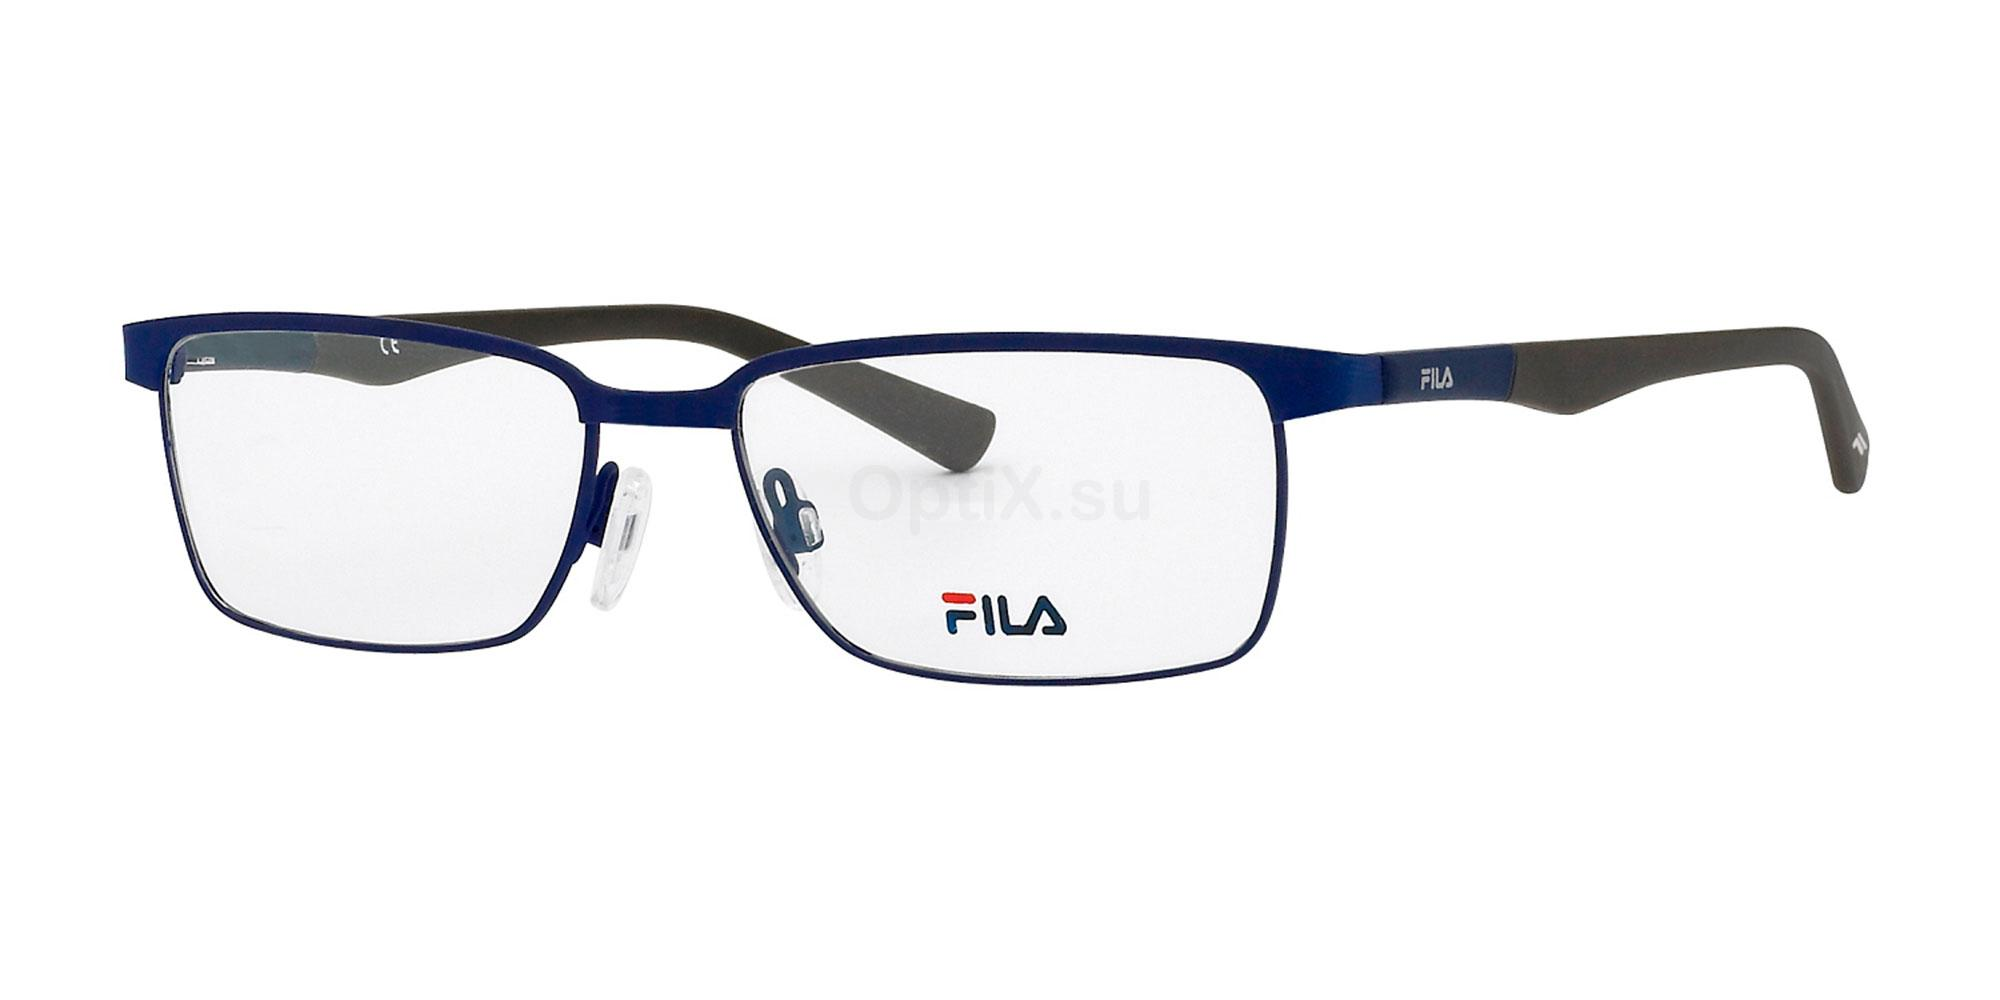 0KAB VF9761 Glasses, Fila